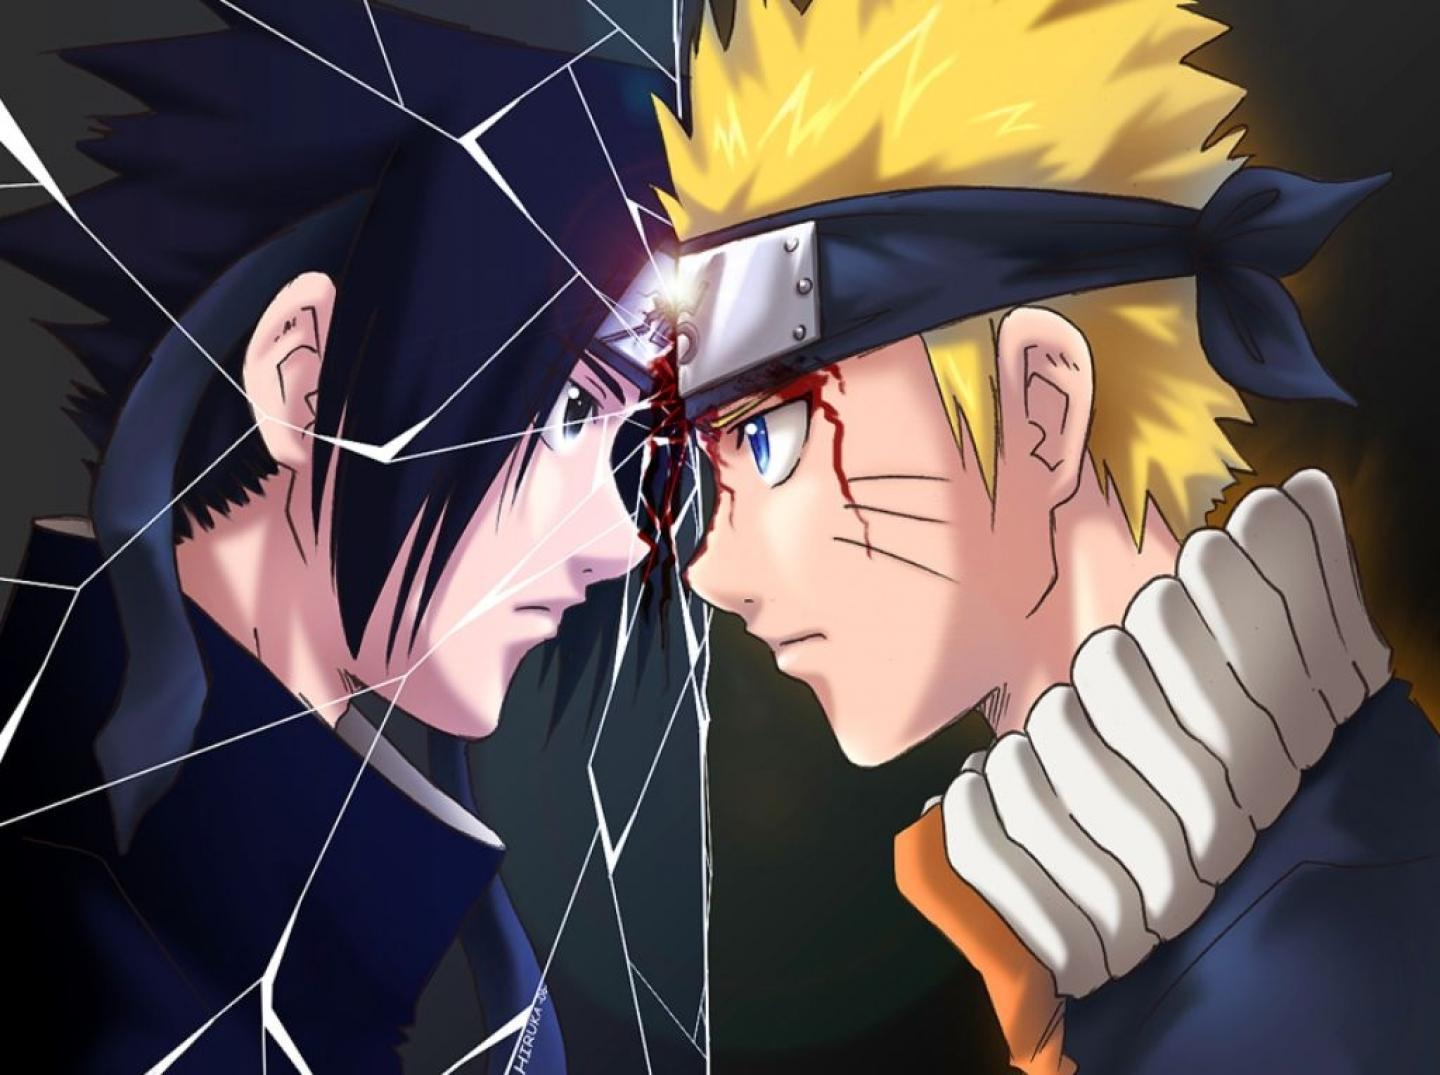 http://images2.fanpop.com/image/photos/11600000/Sasuke-vs-Naruto-sasuke-vs-naruto-11619028-1440-1075.jpg